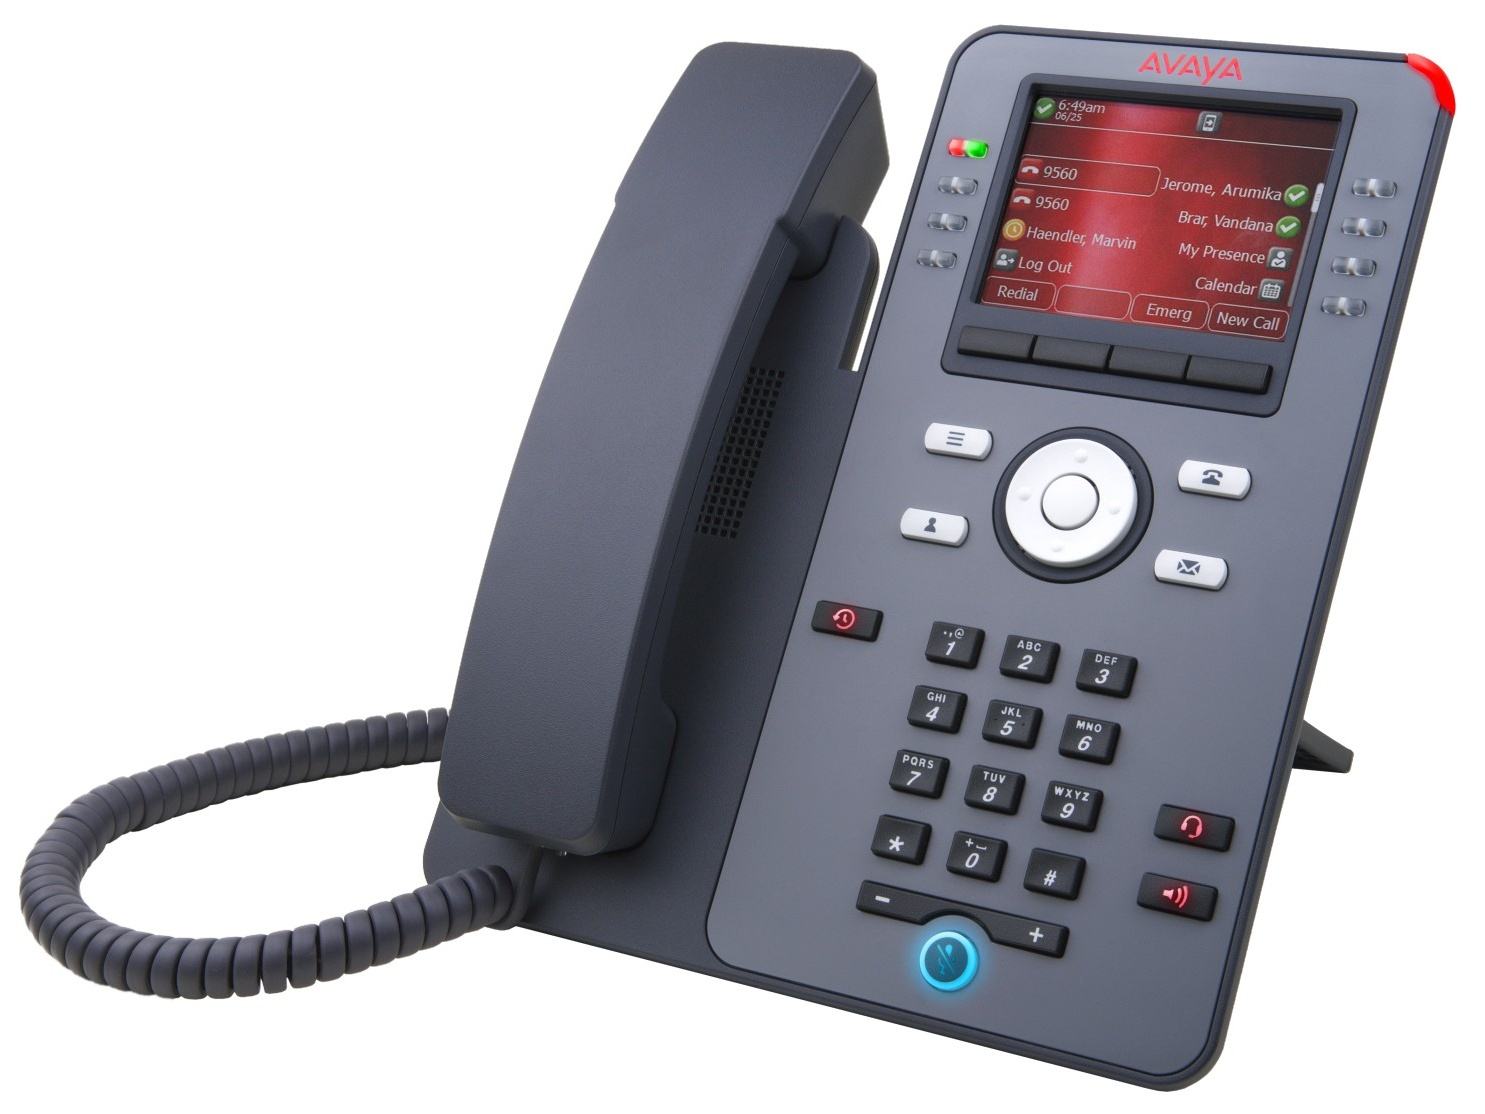 Phone, Auto-attendant, & Voicemail Systems